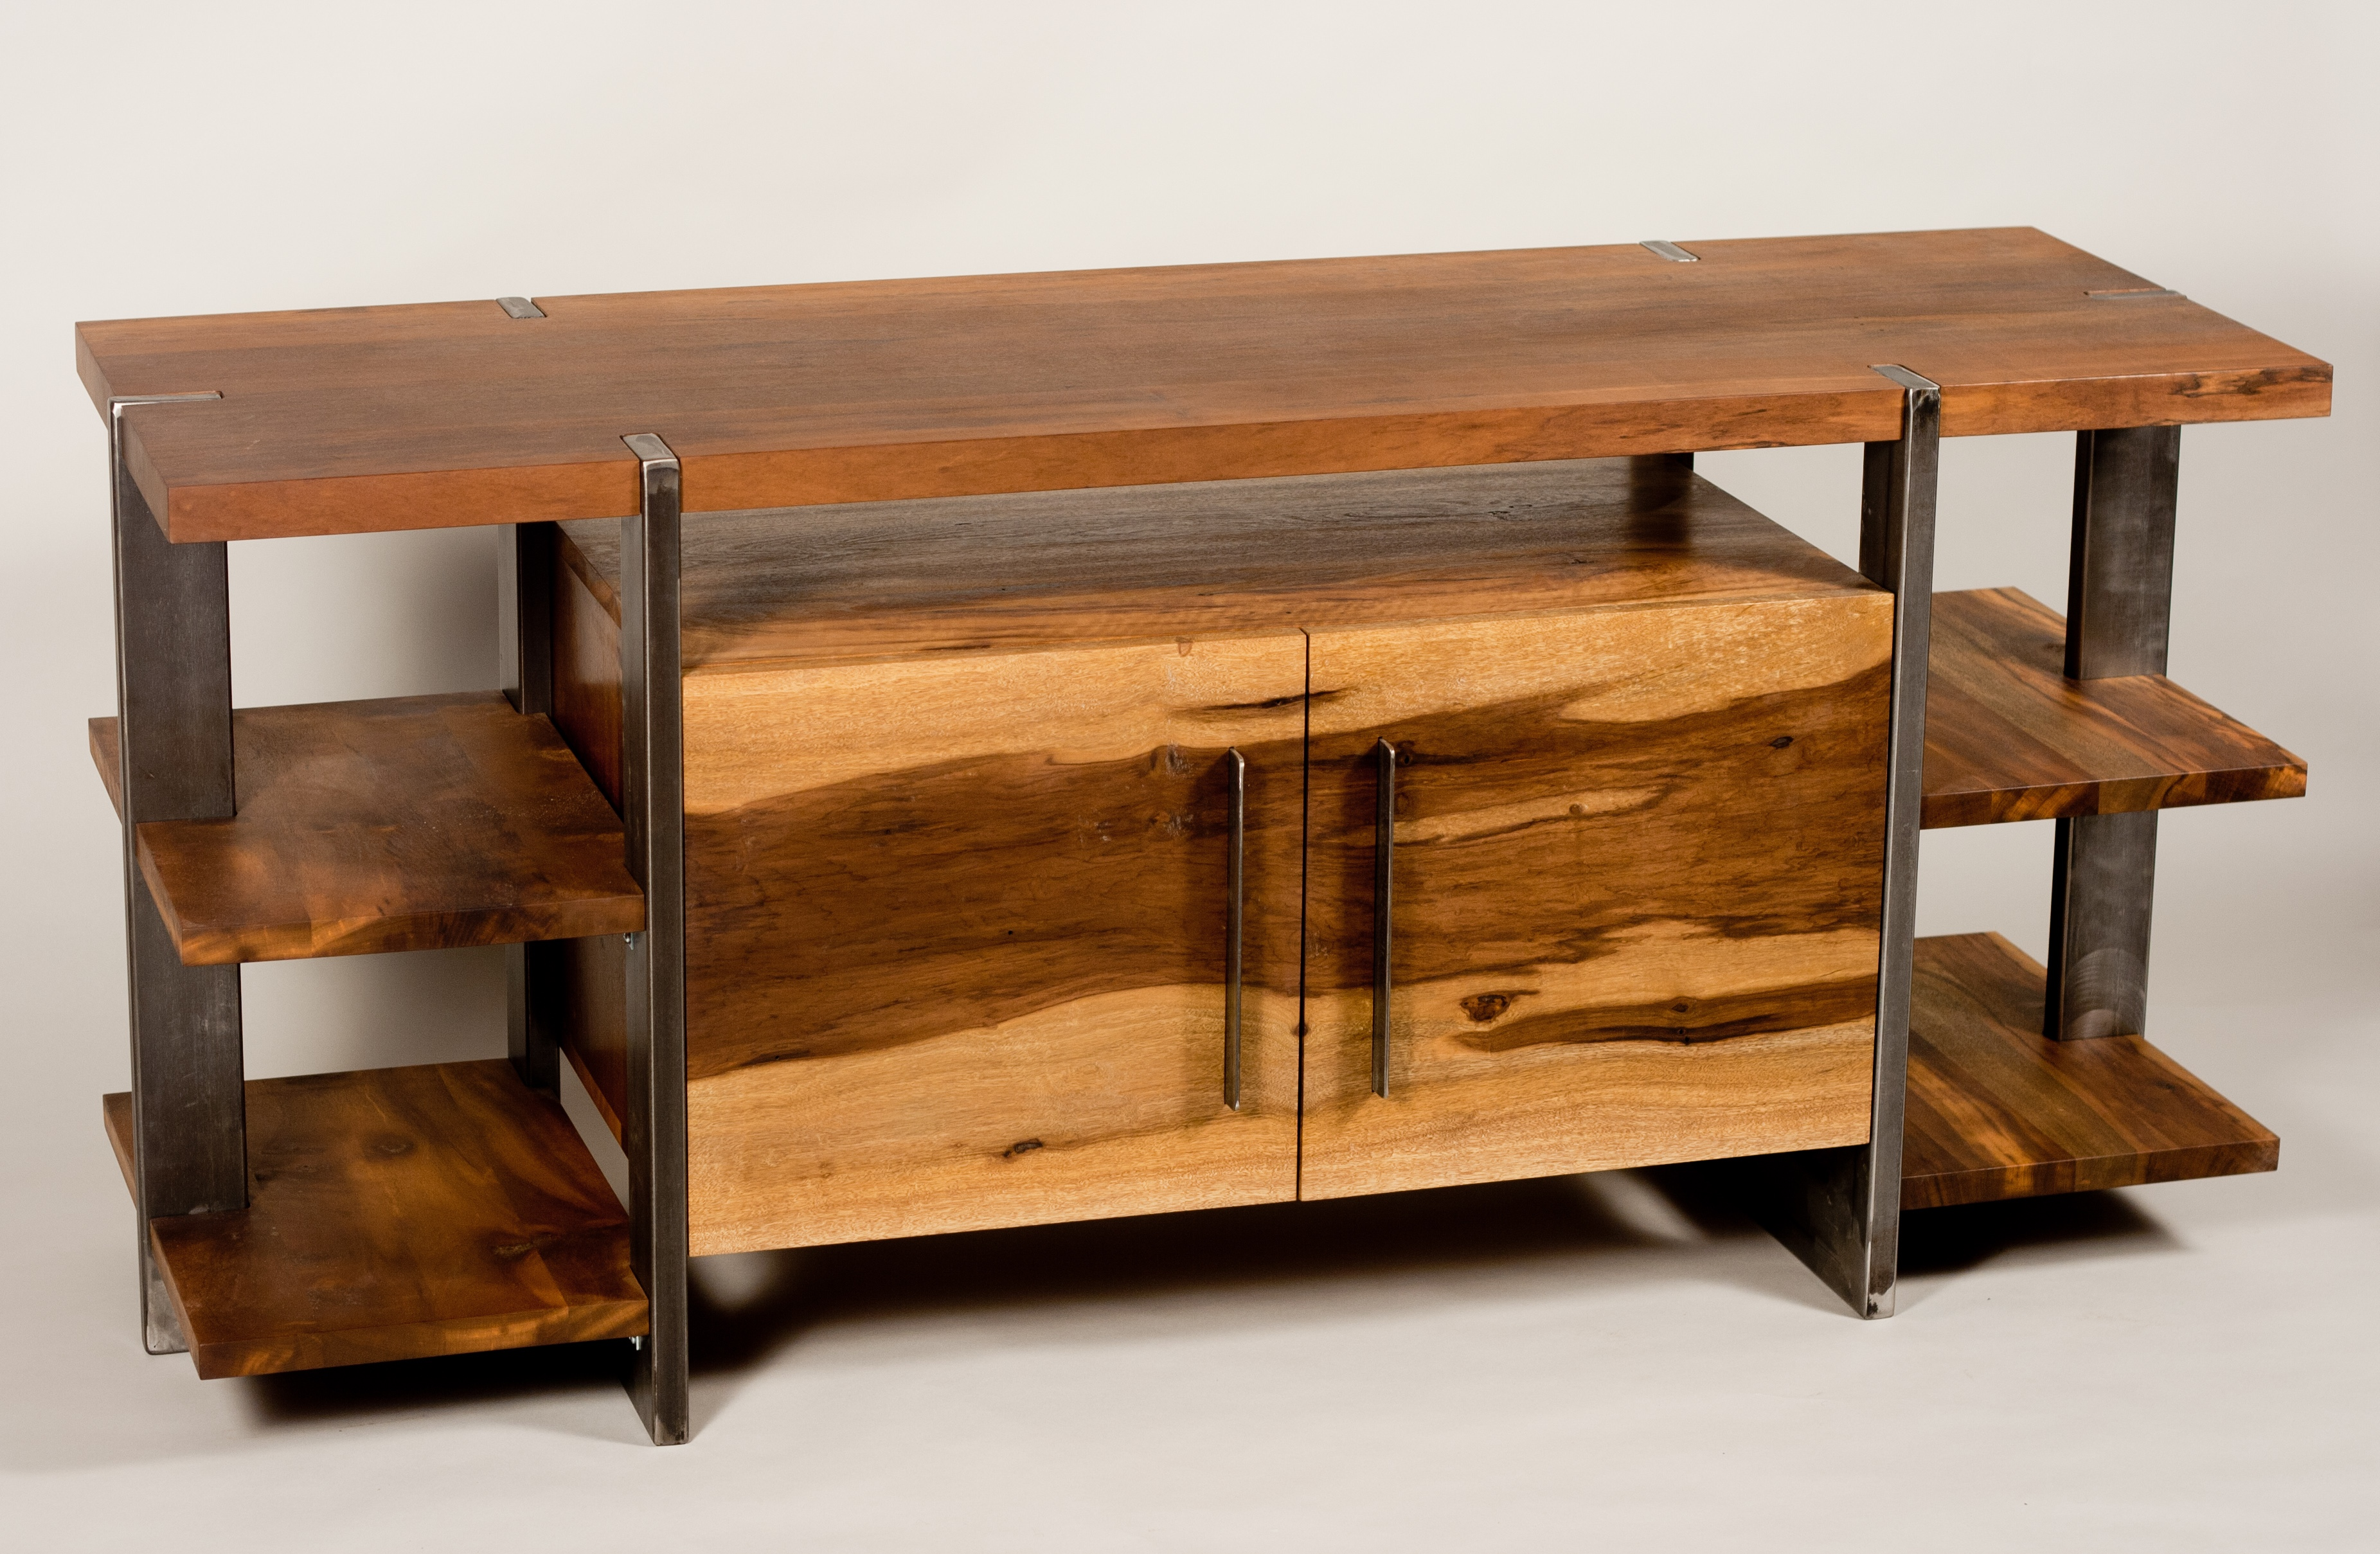 Wood Furniture Design Wood And Metal Living Room Suite Trevor Thurow Furniture